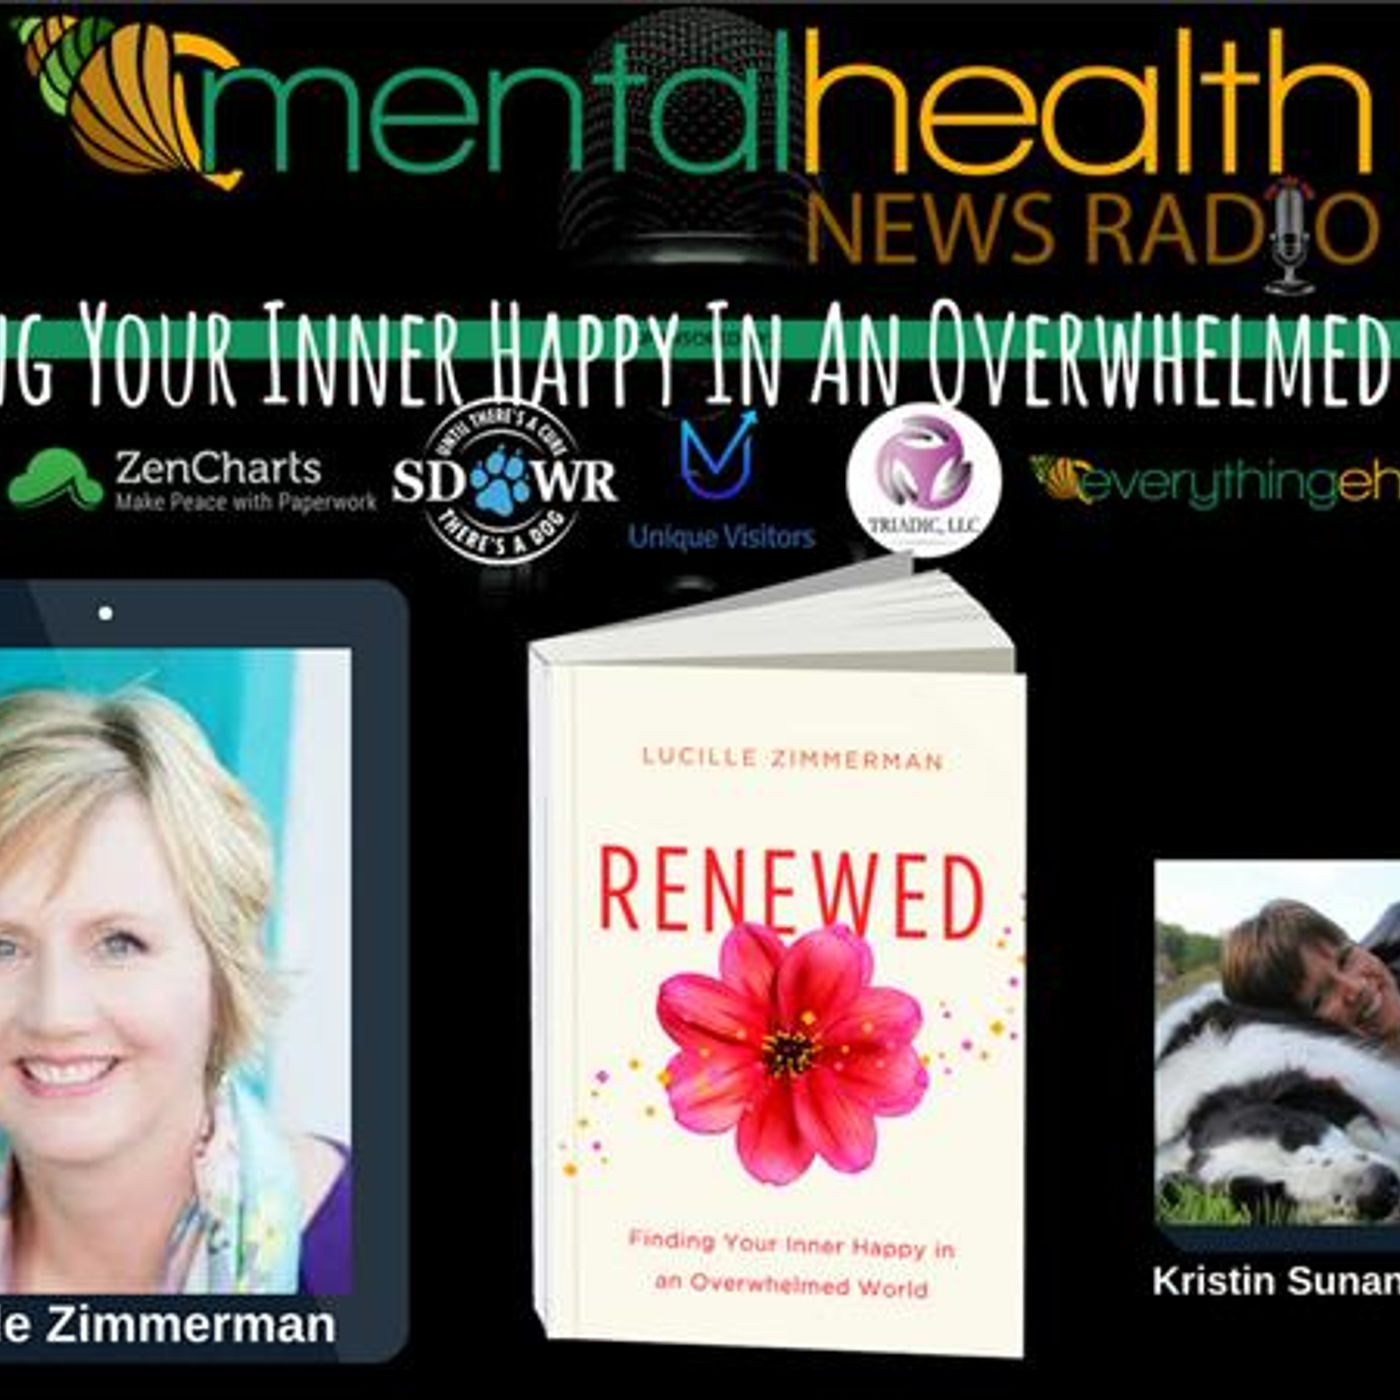 Mental Health News Radio - Renewed: Finding Your Inner Happy In An Overwhelmed World with Lucille Zimmerman